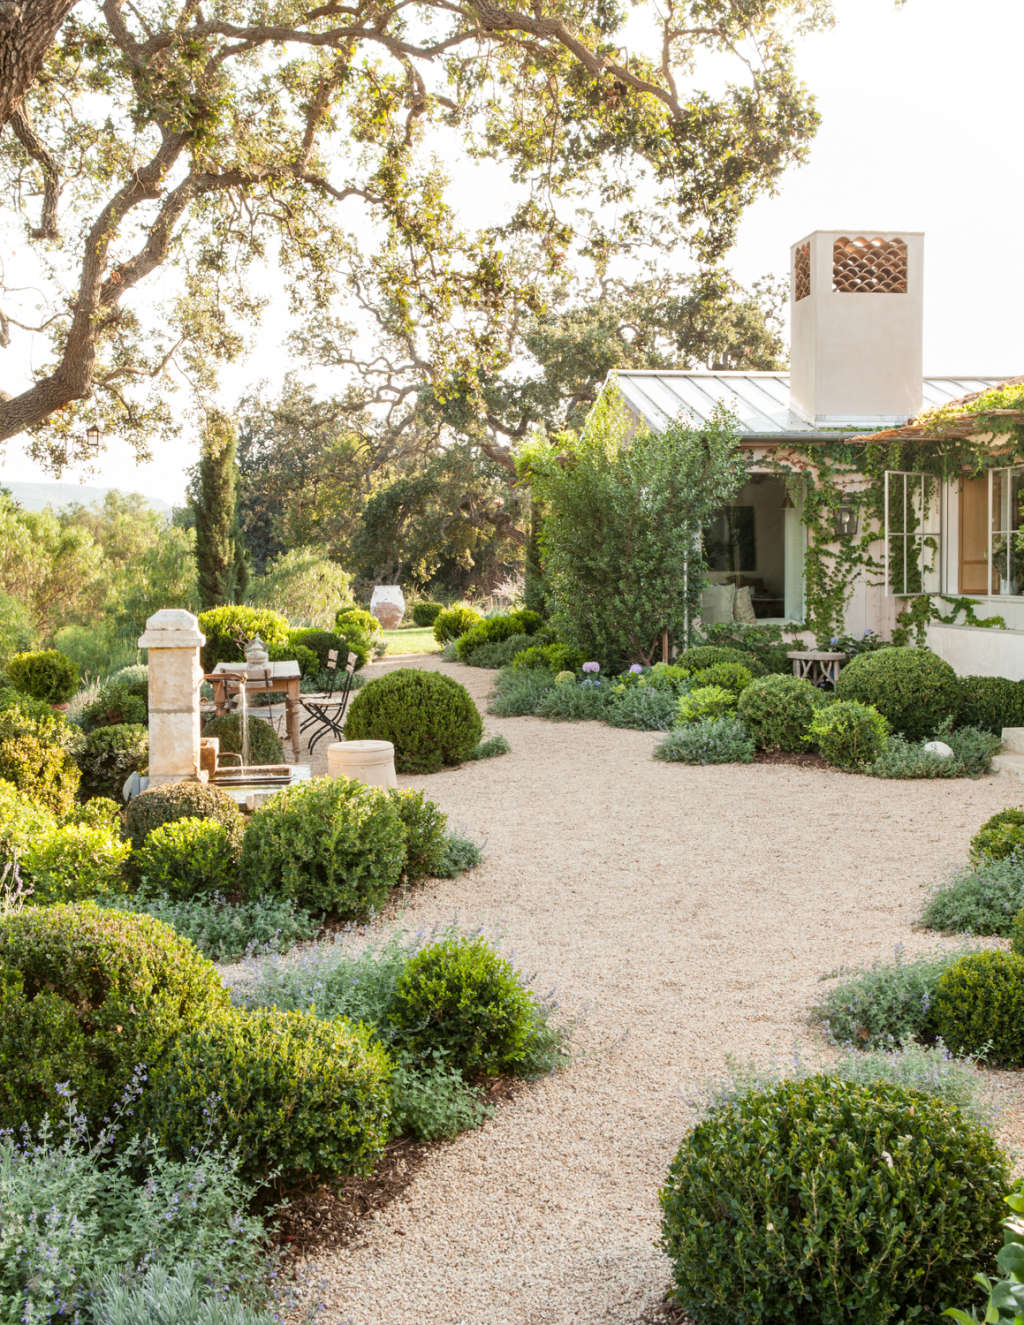 Take Another Look at Gravel: Chic Ways to Use It